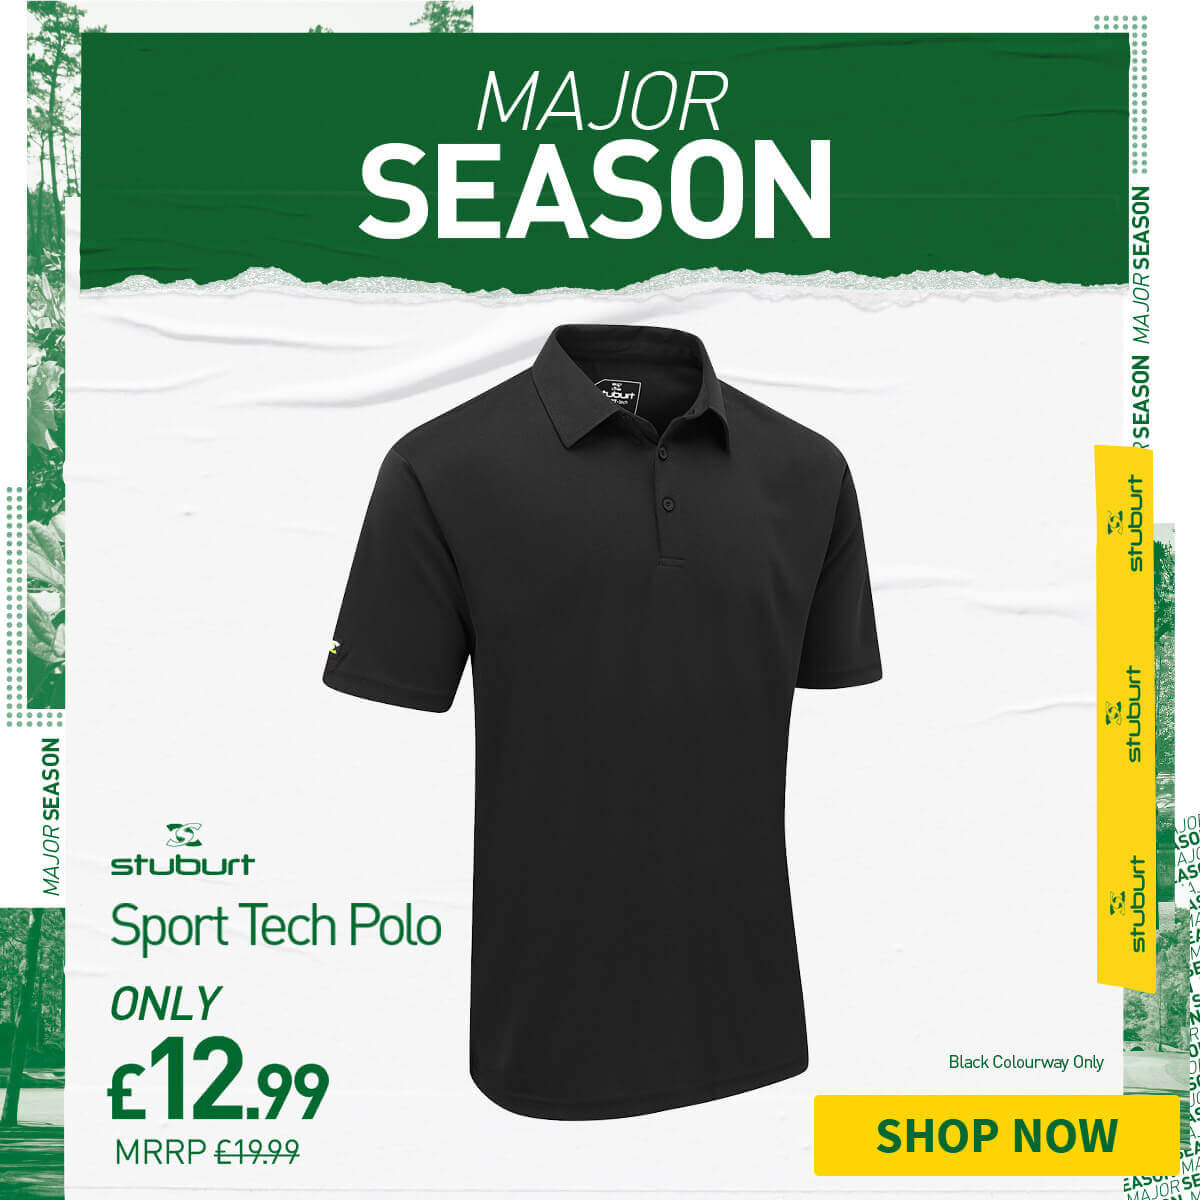 STUBURT SPORT TECH POLO